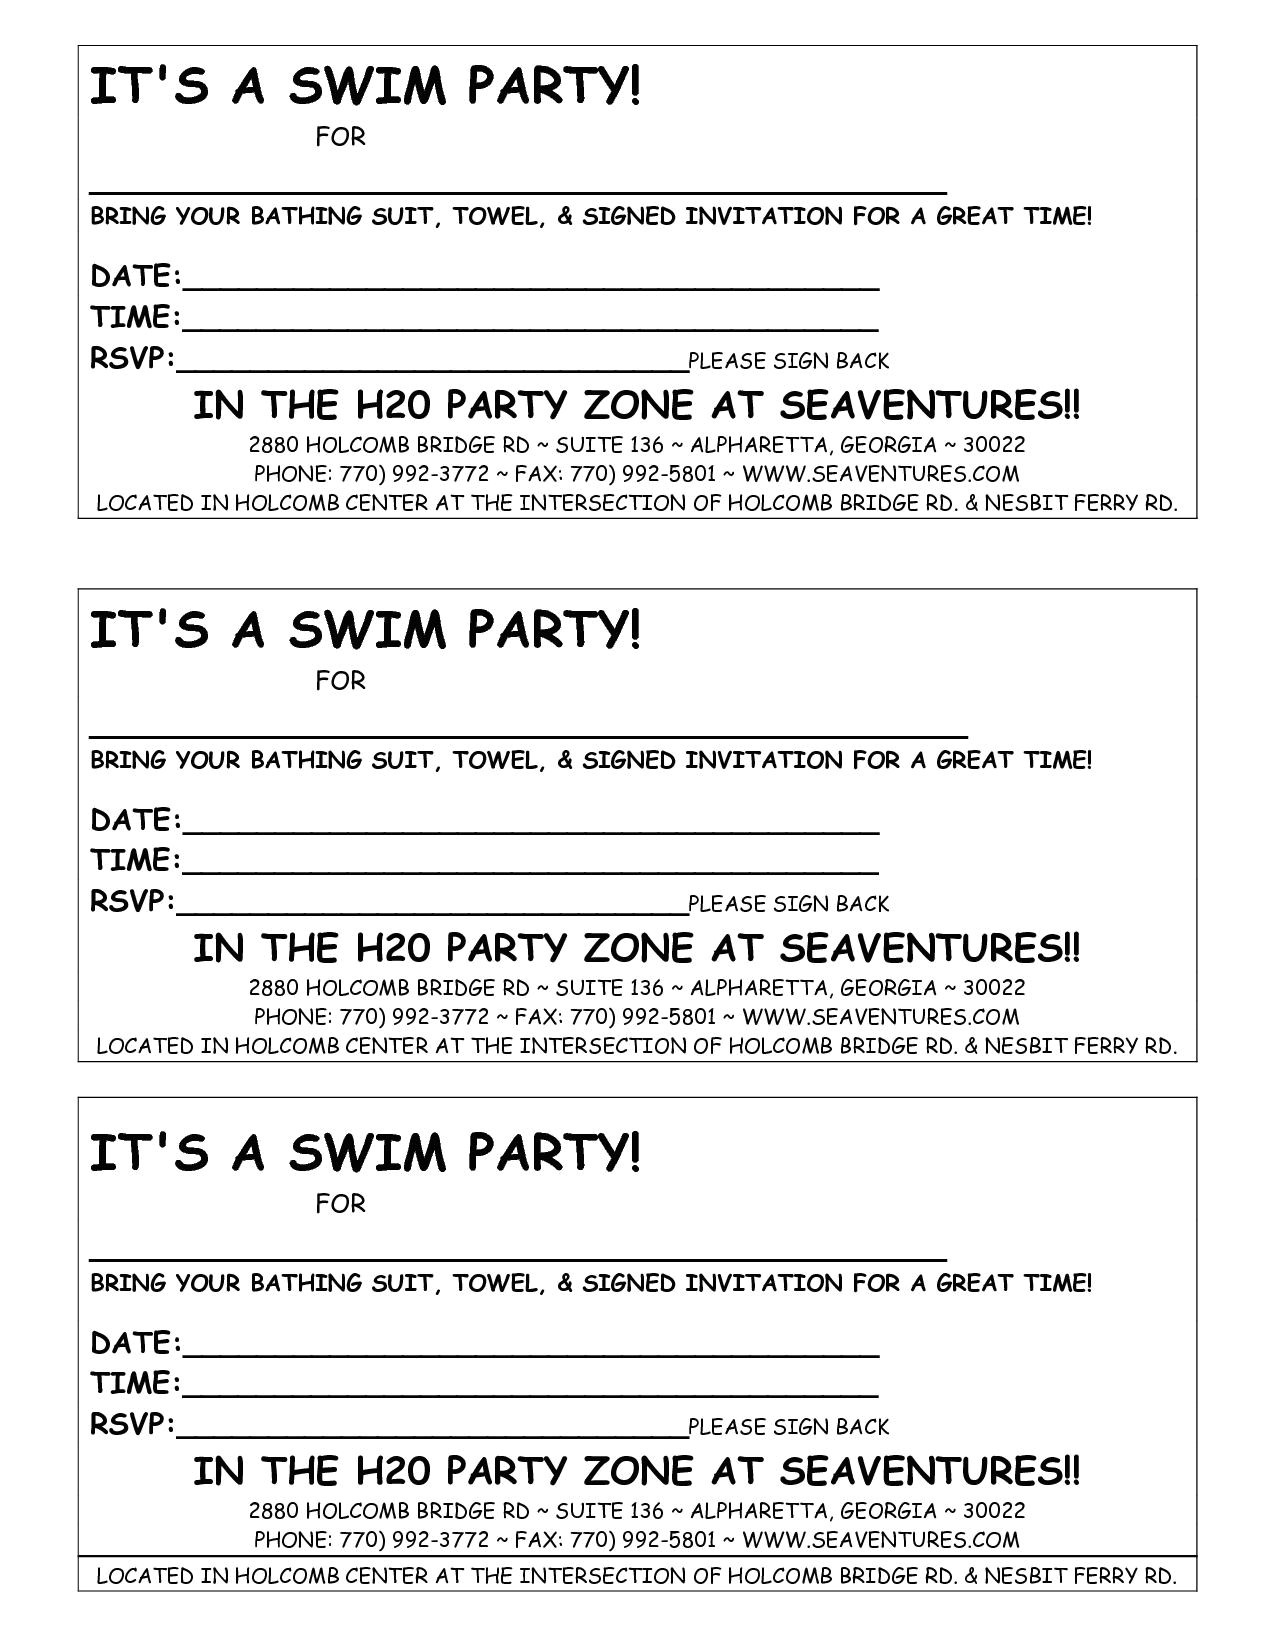 email party invitations